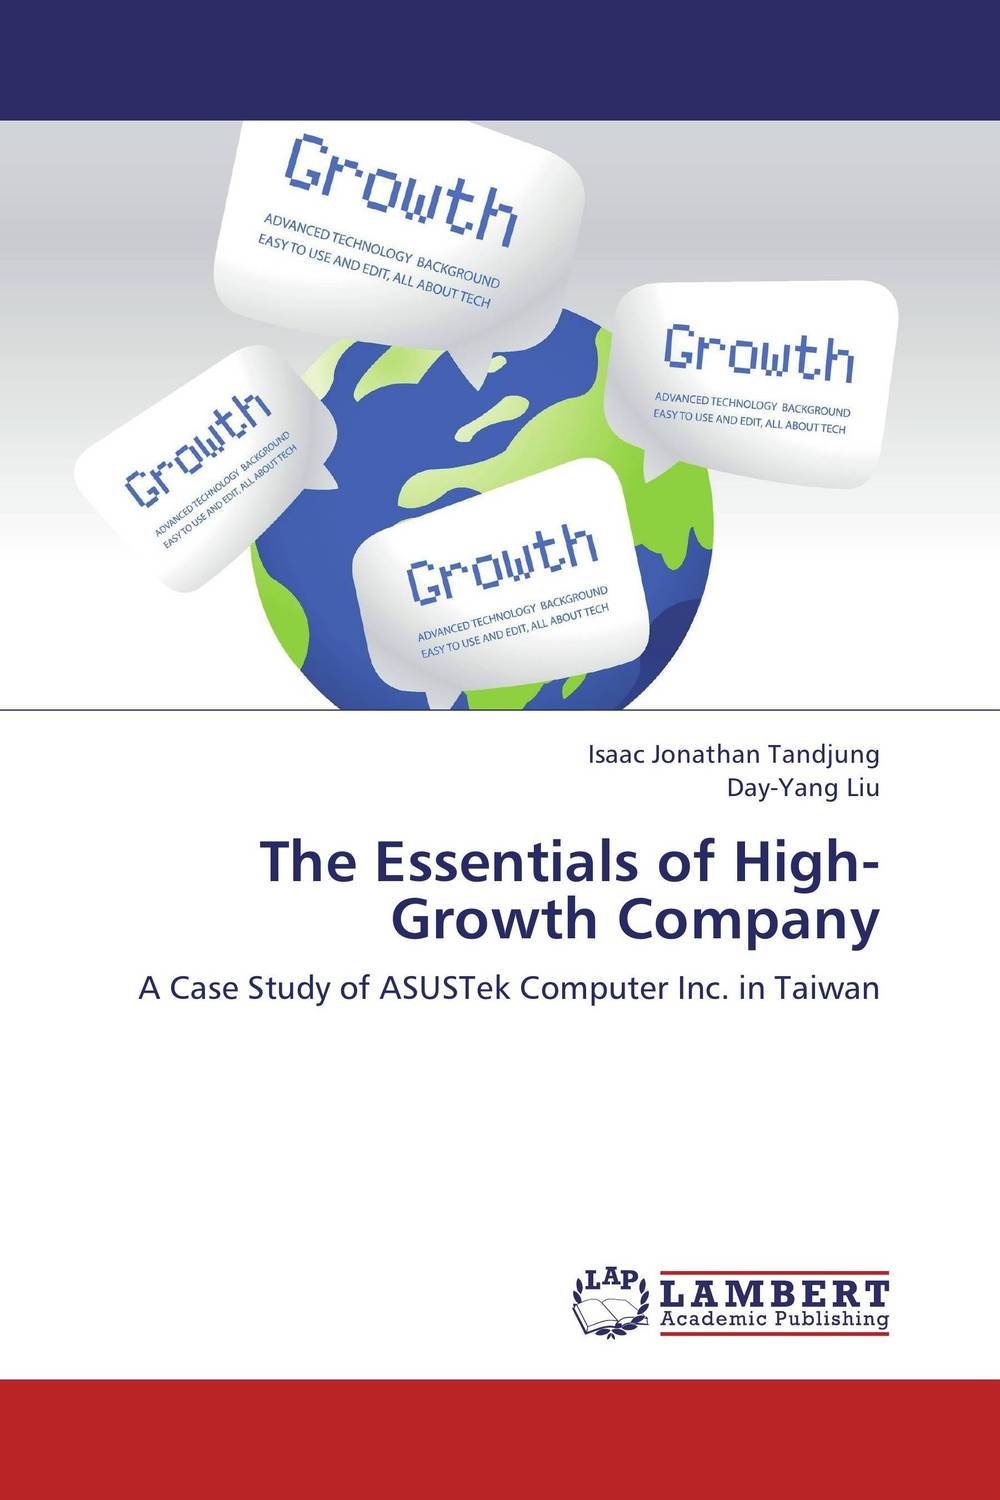 The Essentials of High-Growth Company david thomson g mastering the 7 essentials of high growth companies effective lessons to grow your business